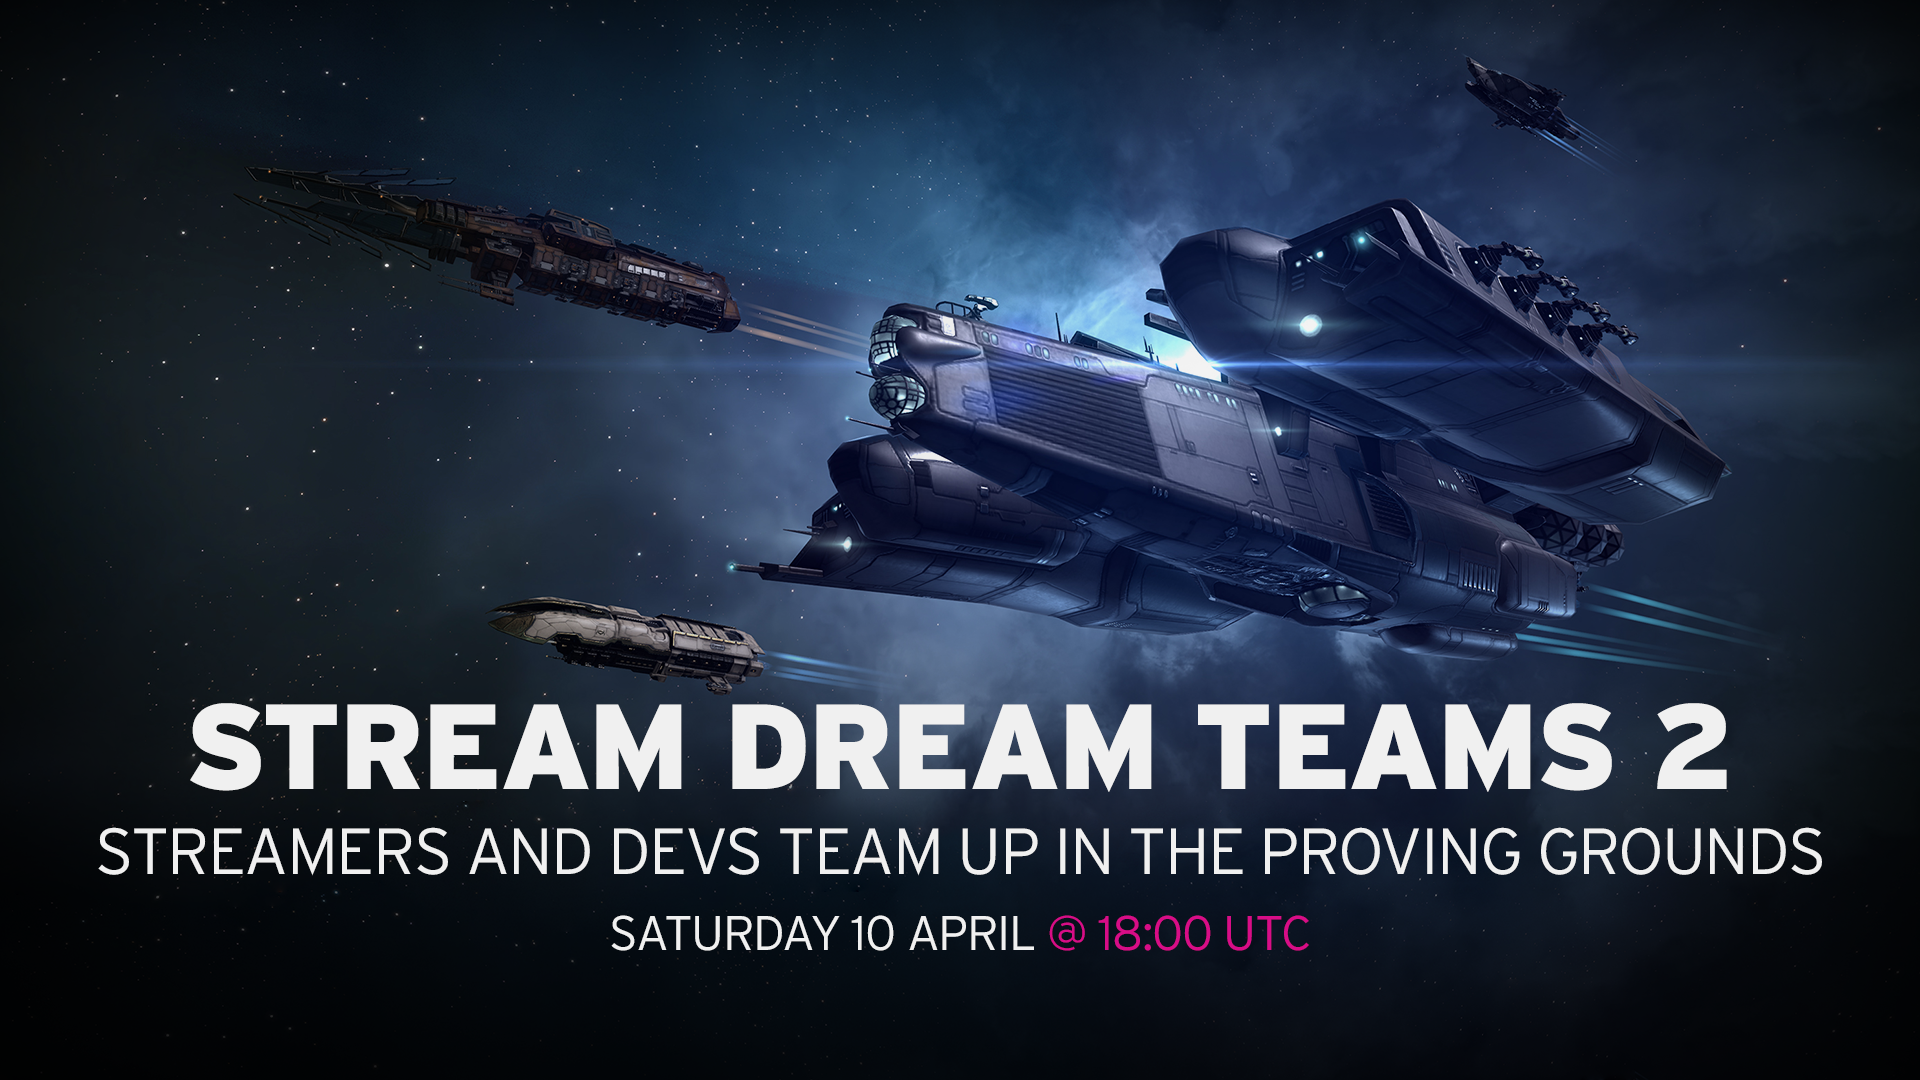 Streamers and Devs Team Up in the Proving Grounds